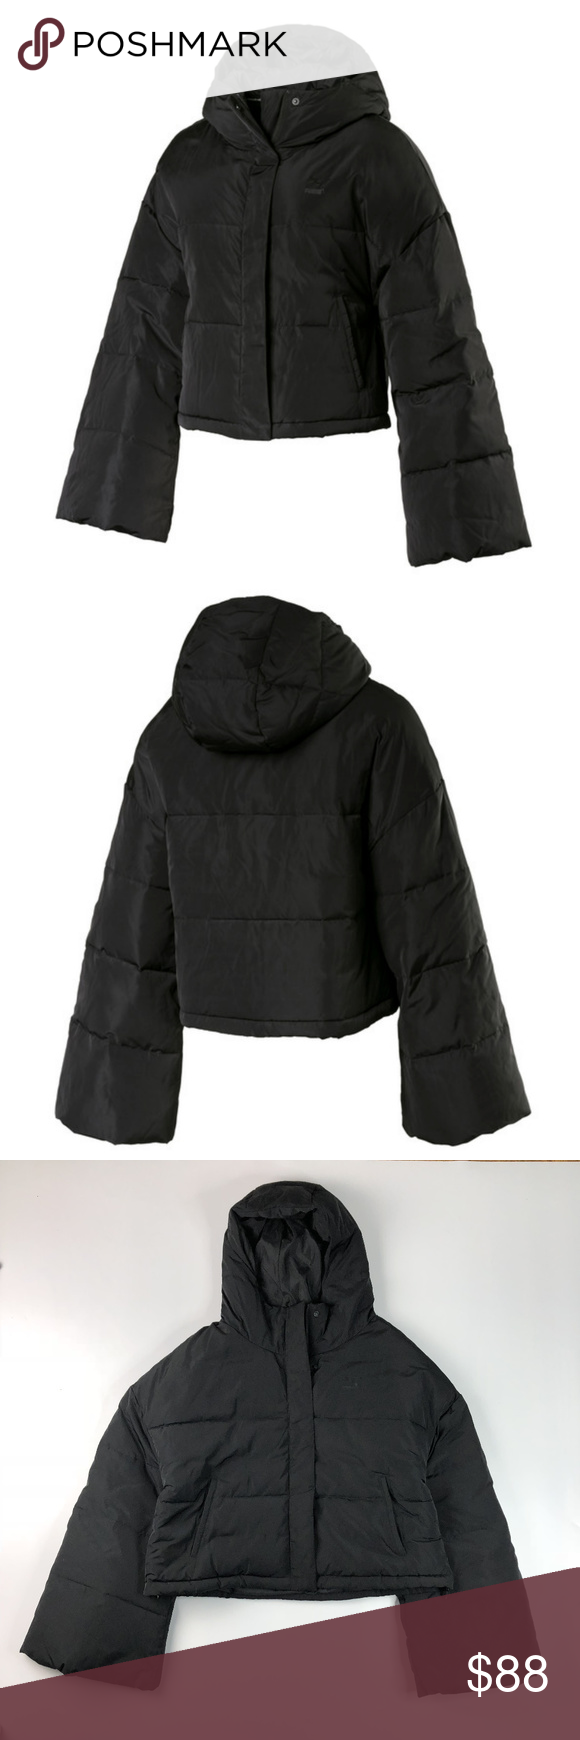 Puma Black Cropped Puffa Quilted Jacket NWT Medium New with